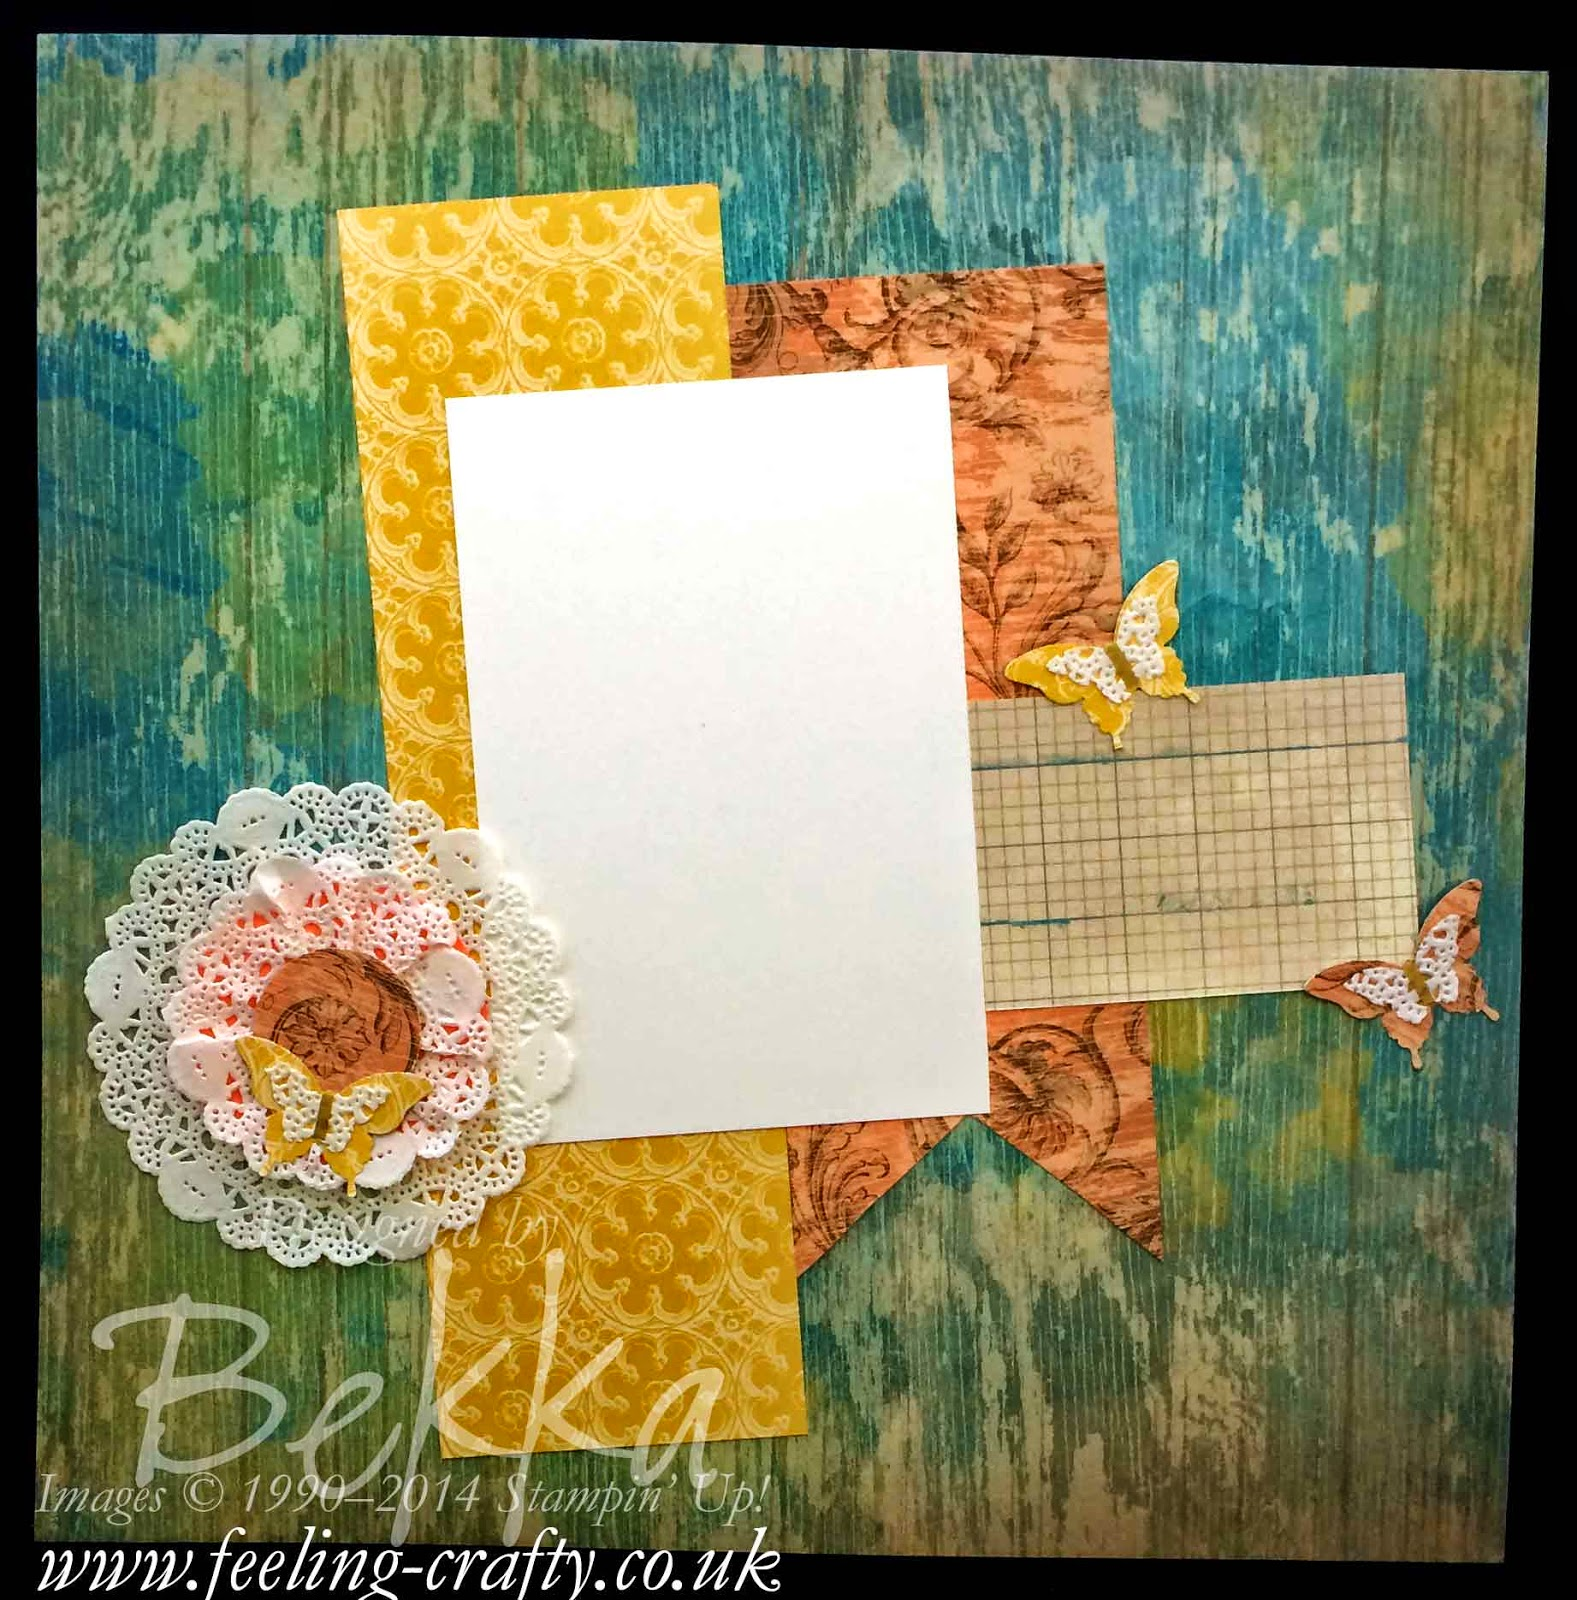 Tea Lace Doiky Fun with Soho Subway Papers - a Scrapbook Page by Stampin' Up! UK Independent Demonstrator Bekka